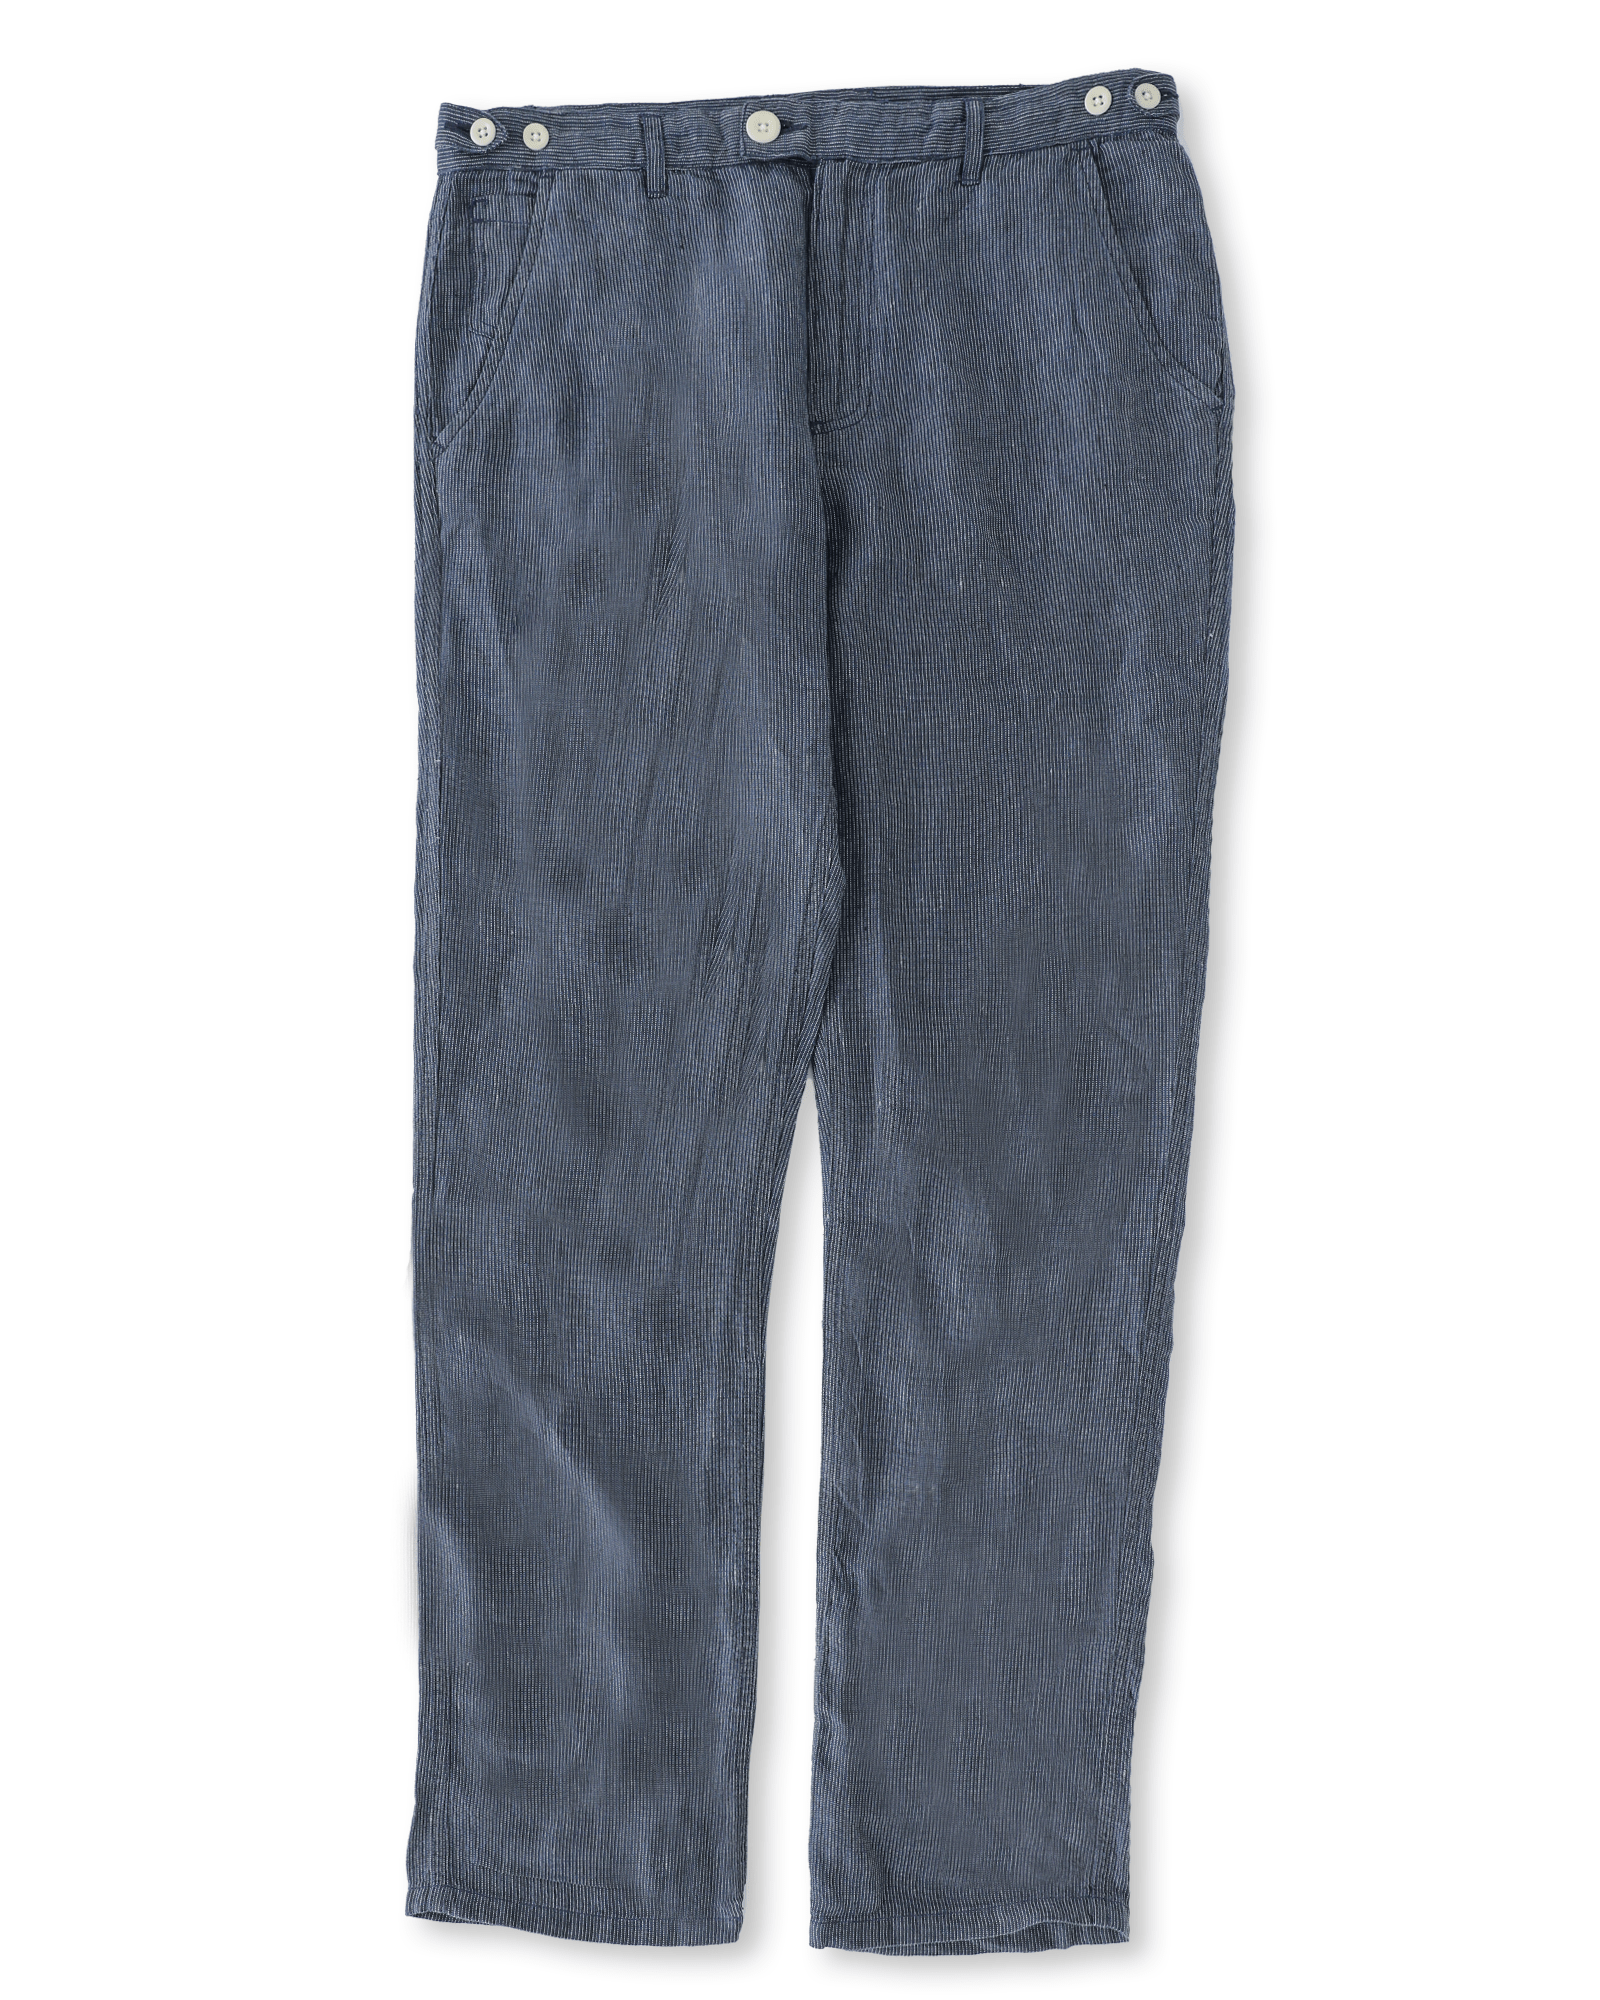 Navy Linen Stripe Trousers